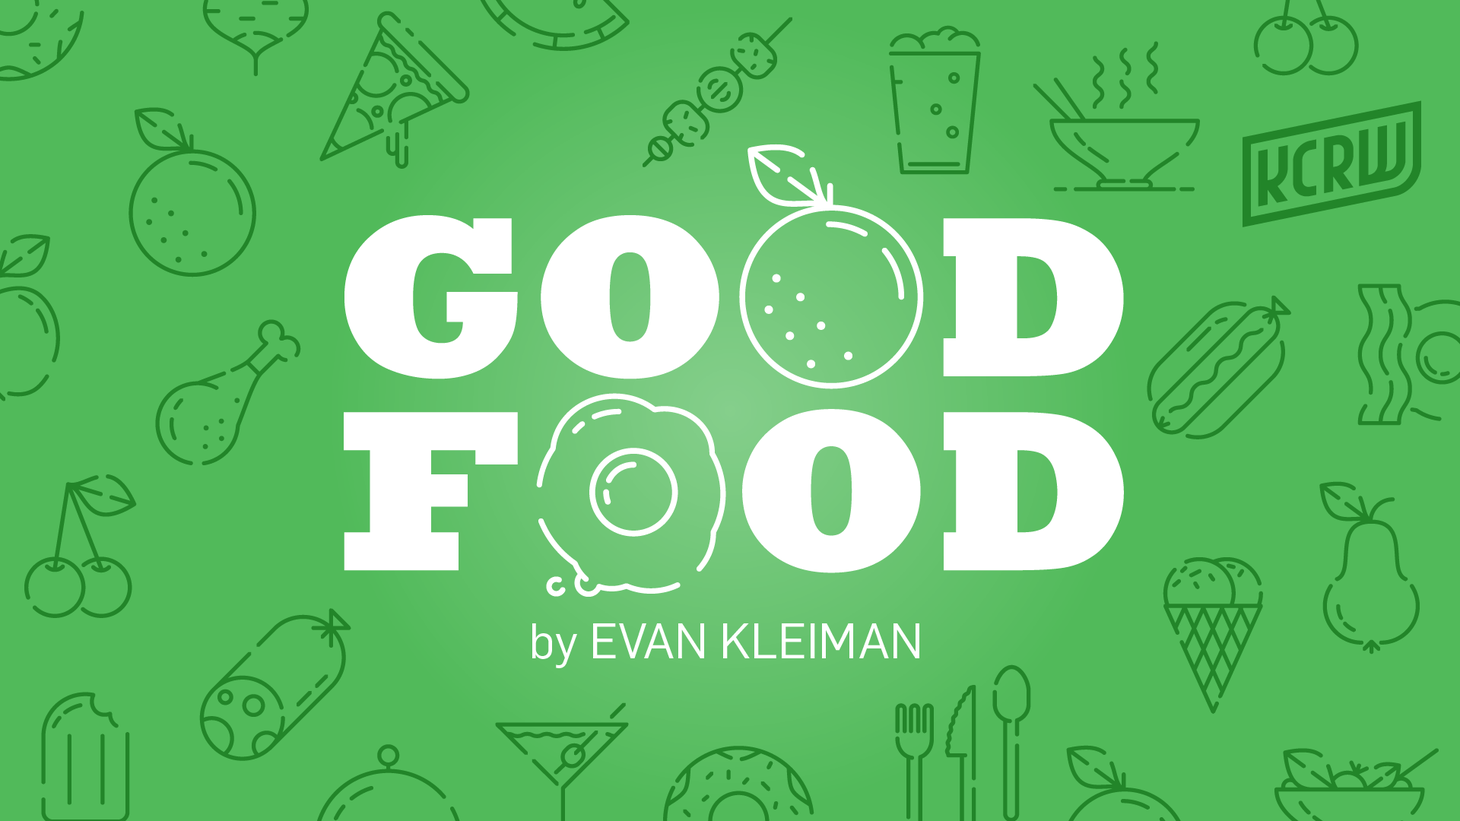 David Hoffman thinks outside the box of breakfast cereal, and Toni Patrick dreams up 101 ways to spice up your ramen noodles. Stacie Hunt gives us some late summer wine picks to sip from the hammock and Nancy Mahaffey is just talking ham. Gustavo Arellano returns with some great Vietnamese food in Santa Ana, and Mark Bodnar tells about his bakery which has gone to the dogs. Carol Firenze leaves us feeling light and supple with a bit of olive oil.